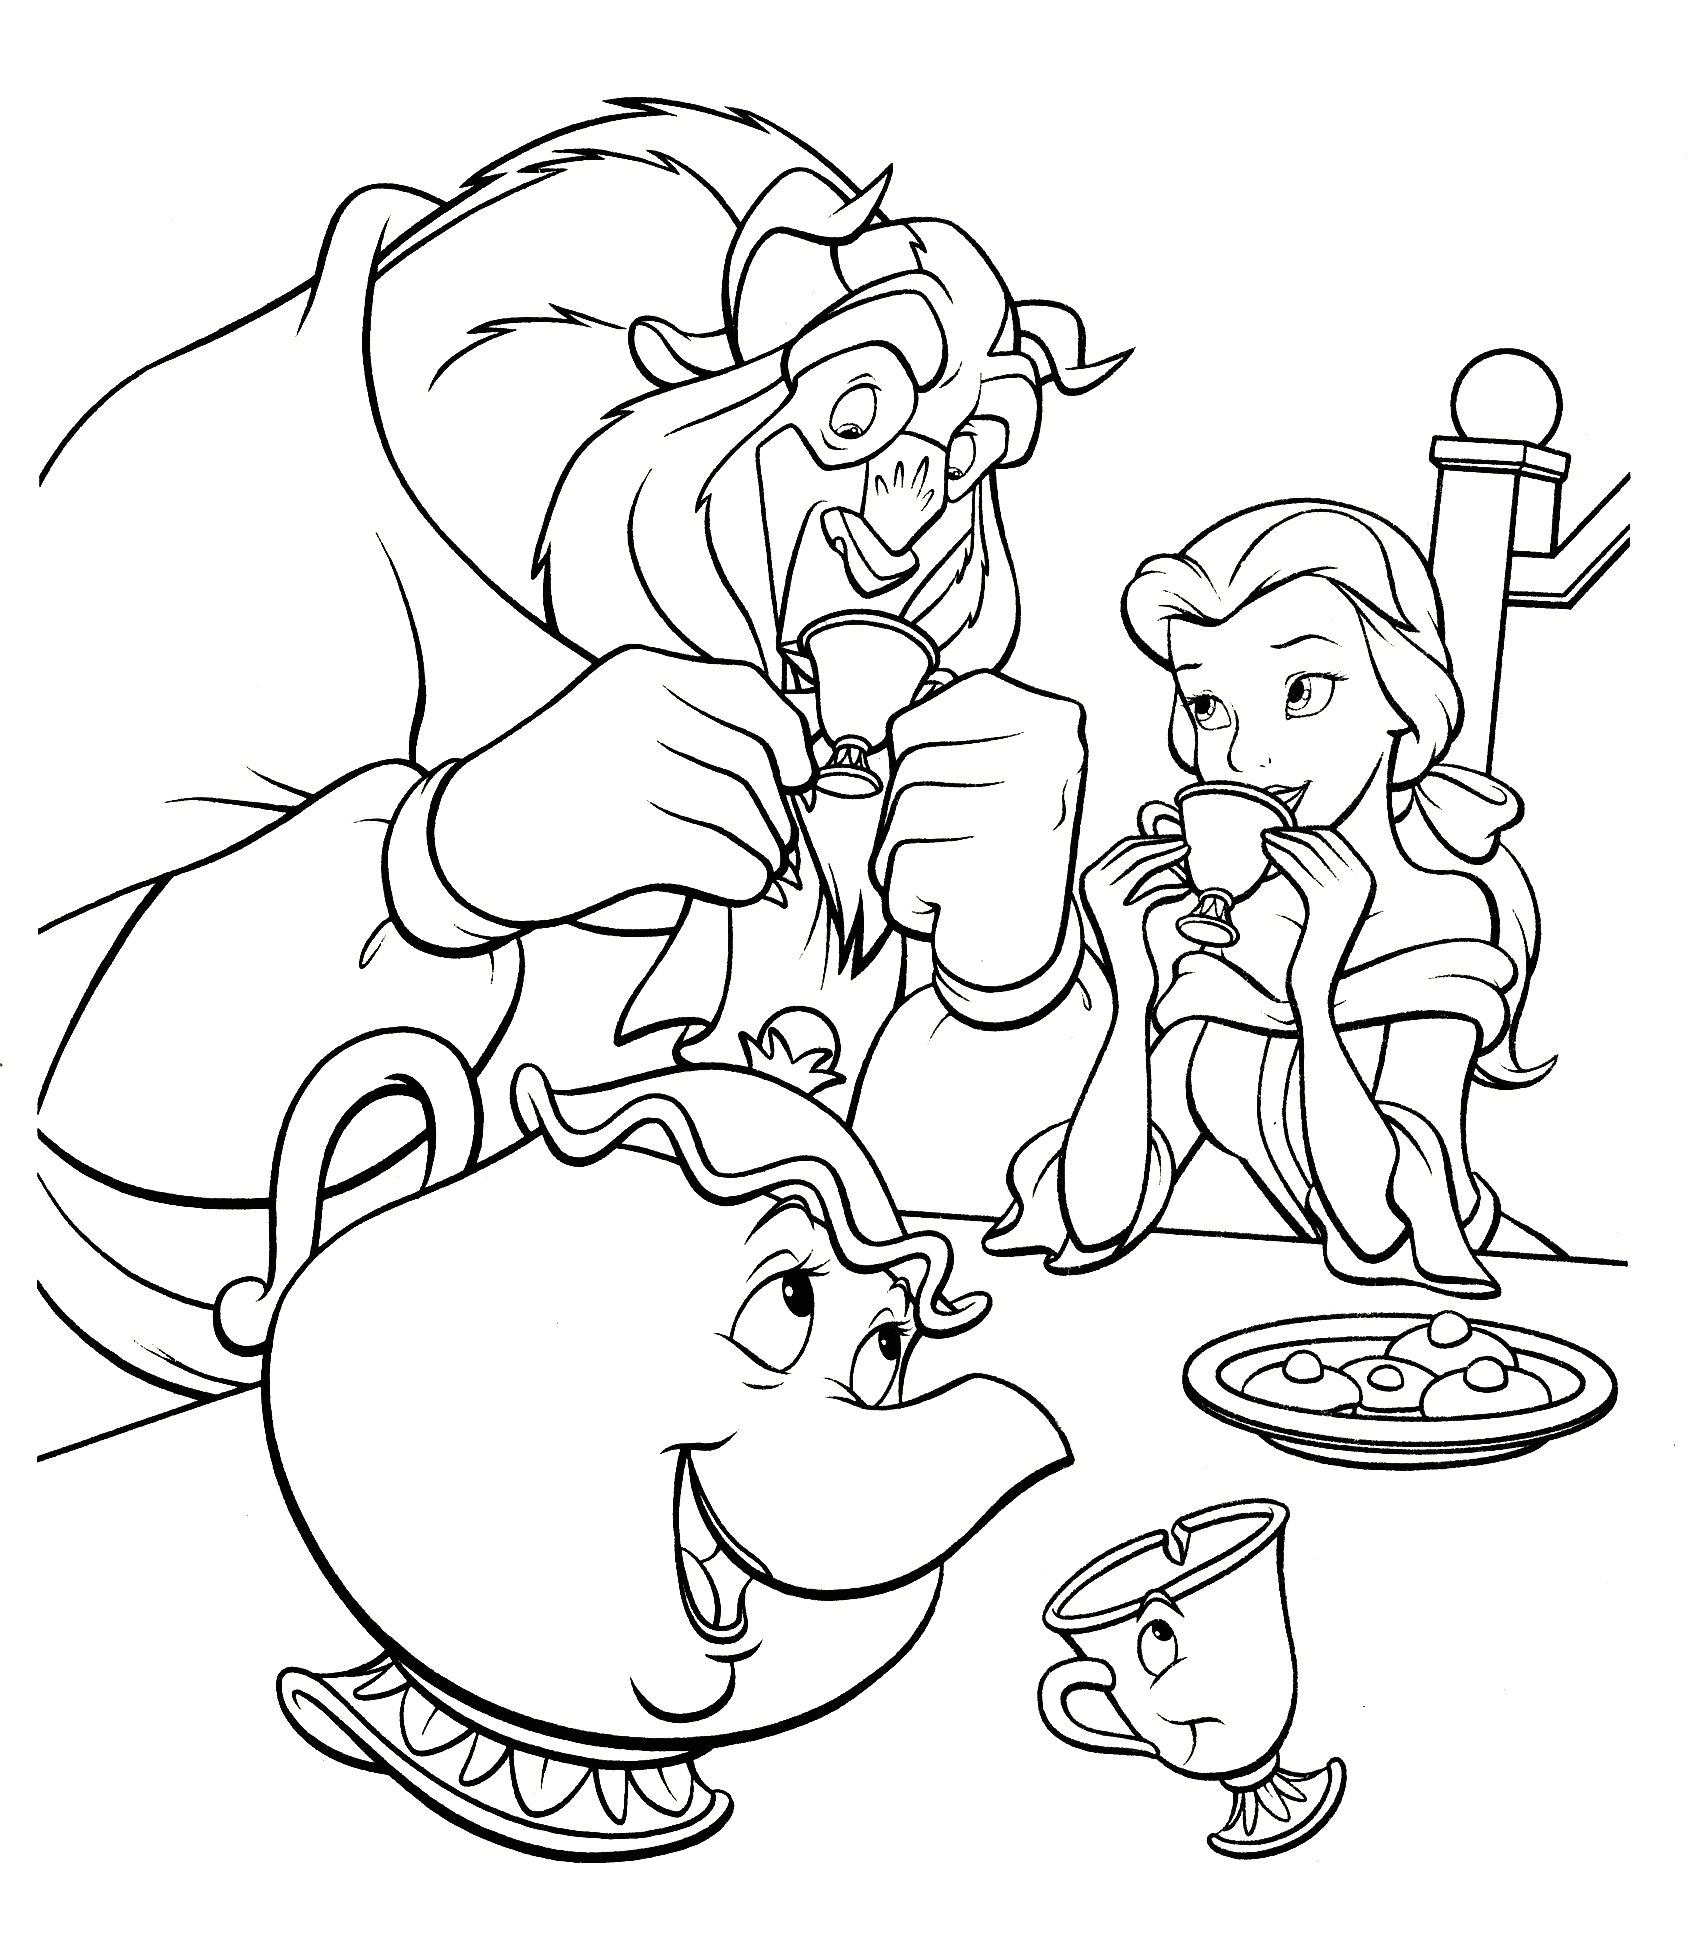 Disney Beauty and the Beast Coloring Pages to Print Beauty and the Beast Free Colouring Pages